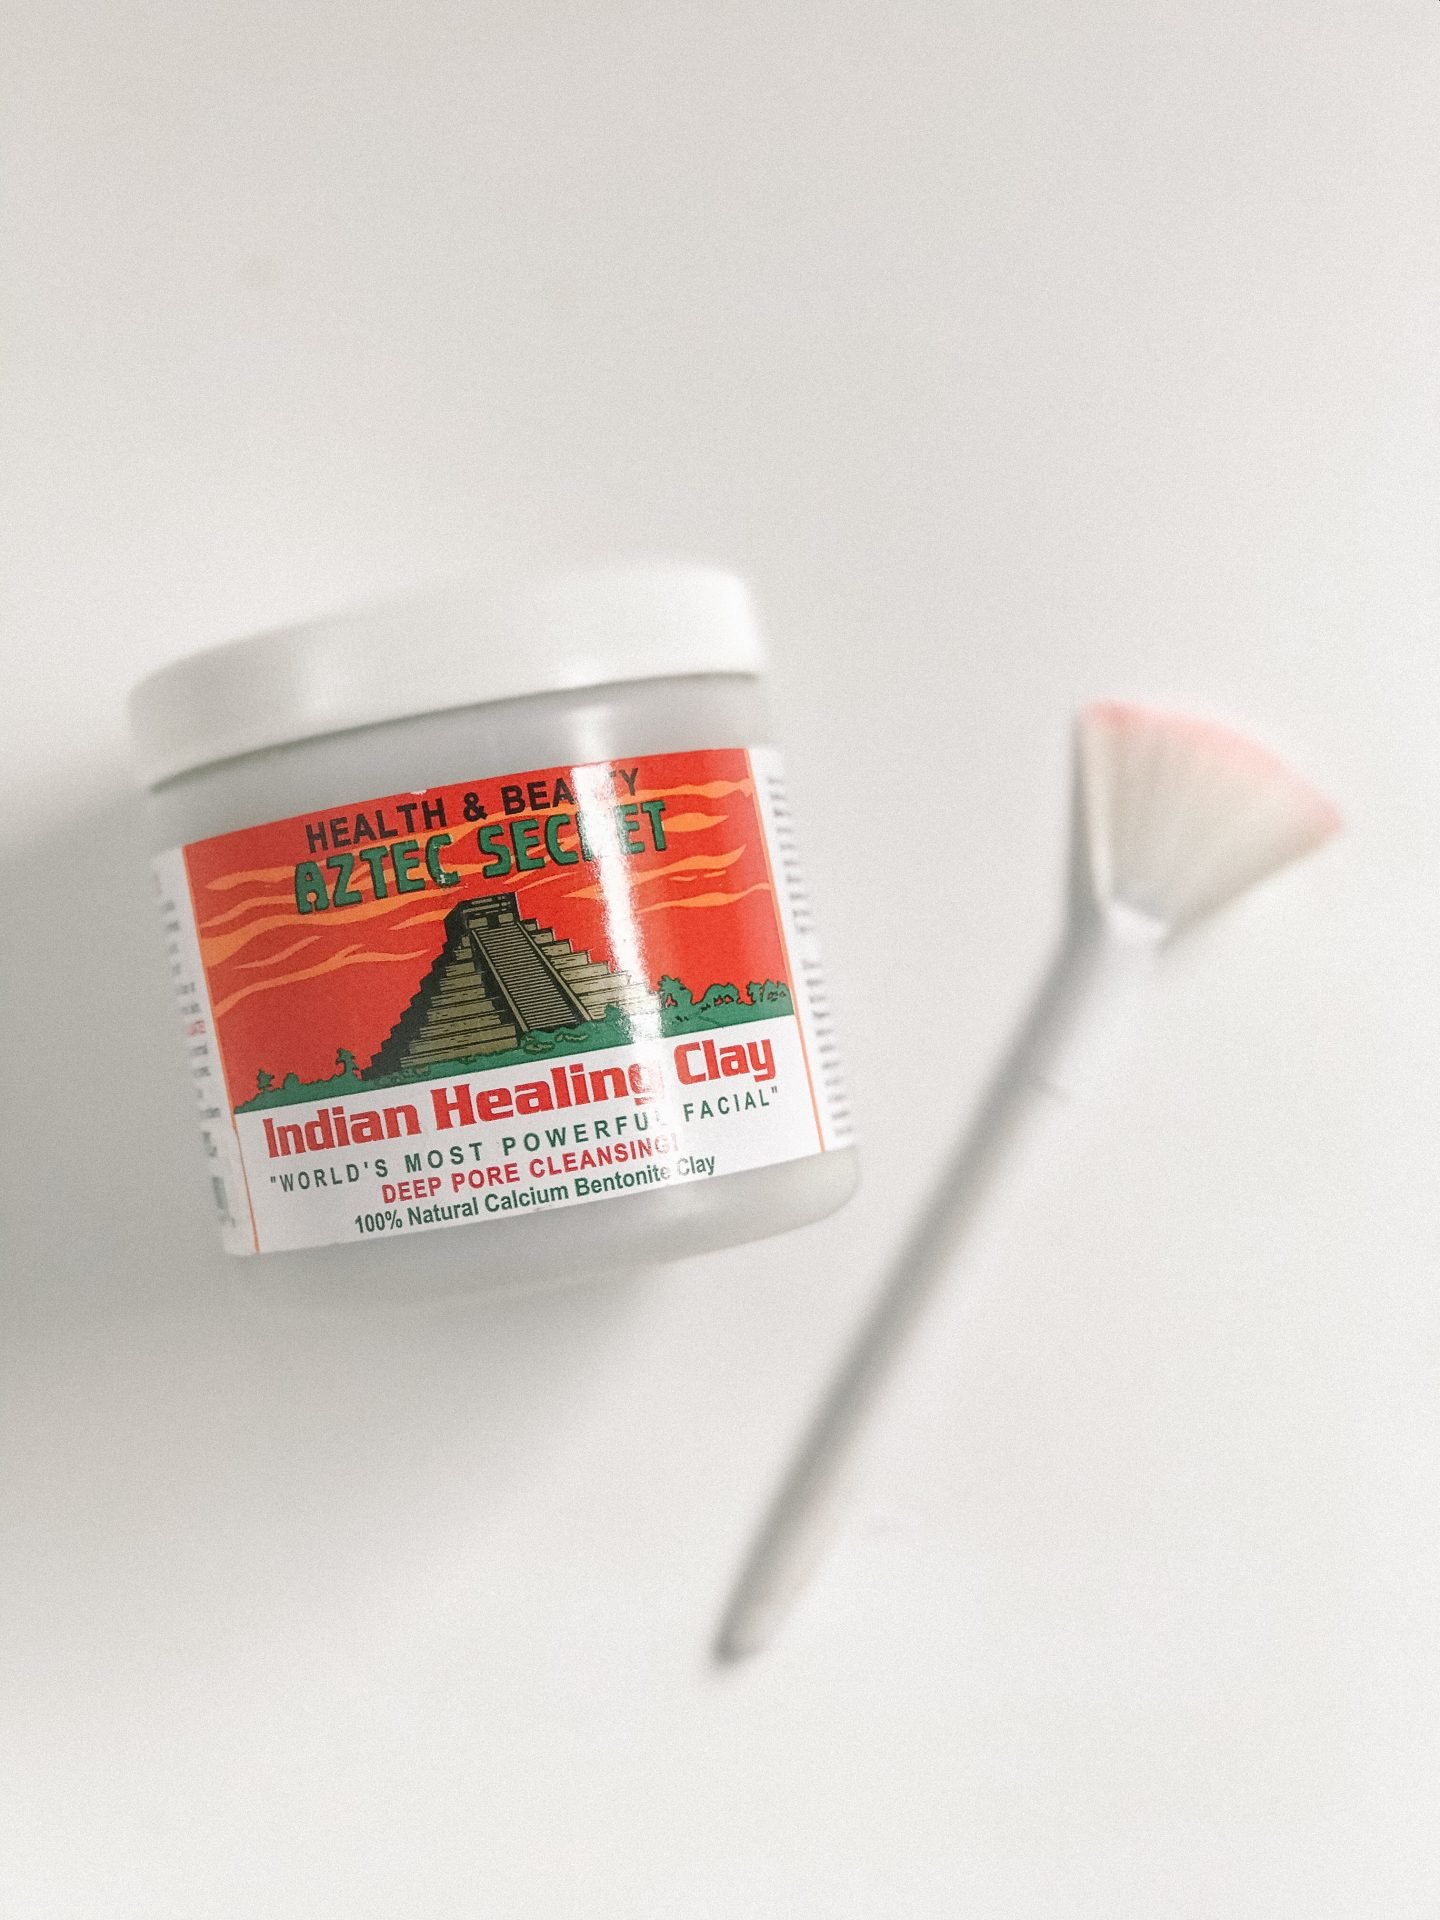 Aztec Secret Indian Healing Clay Face Mask Review